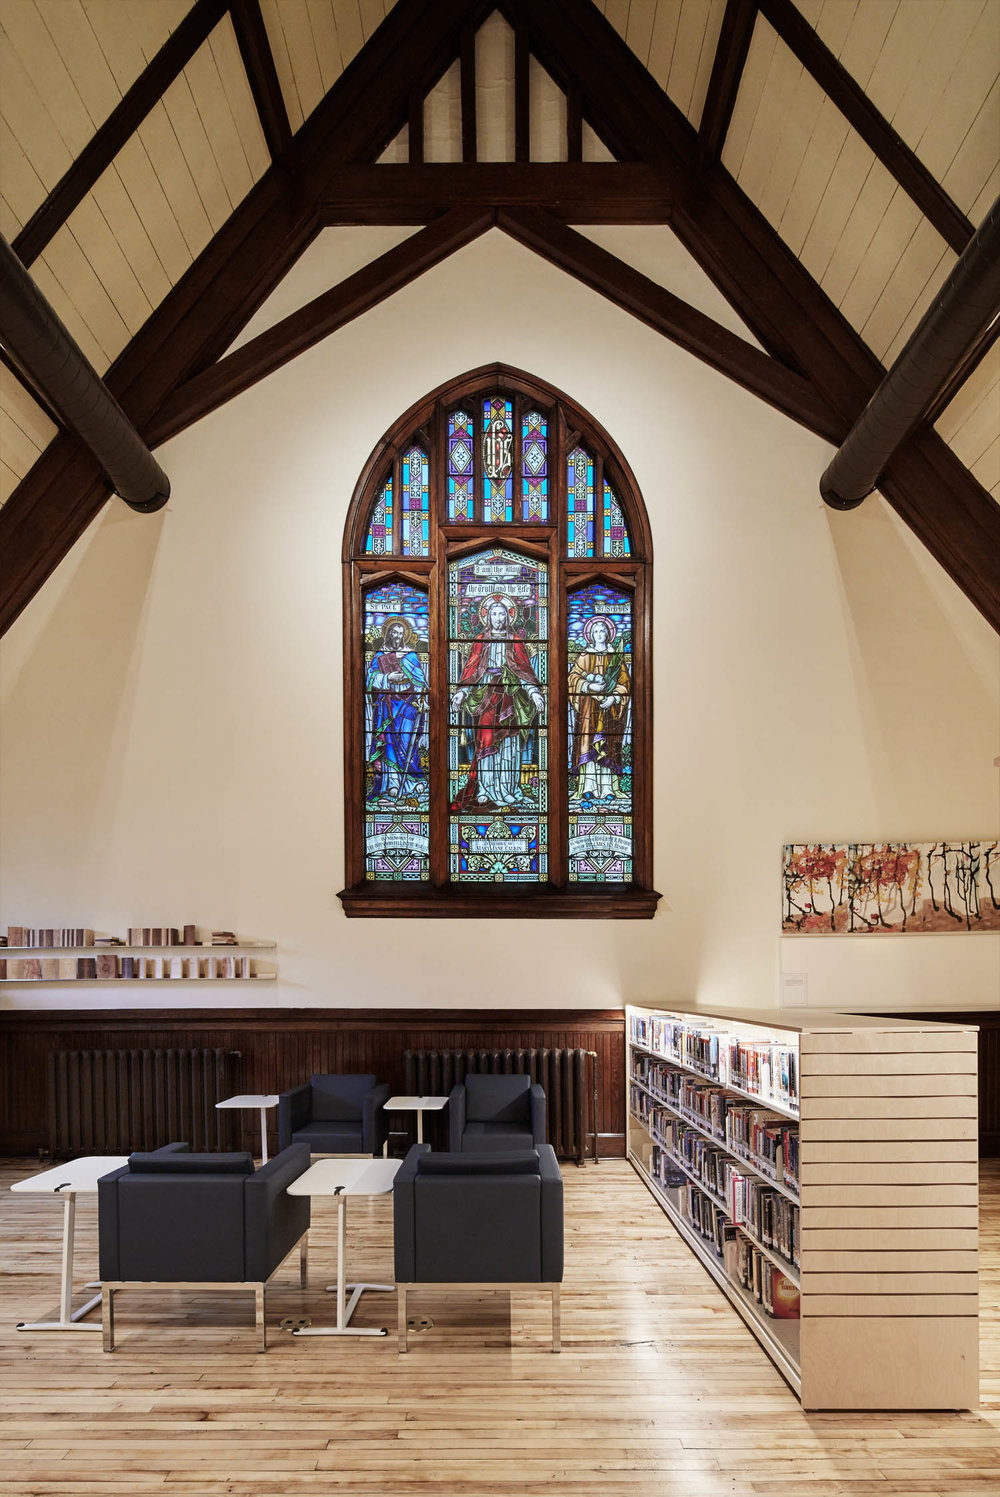 houdinidesign_ARCHITECTS_Kentville Library_Kentville_Annapolis Valley_Adaptive_Reuse_Church_Renovation_Stained_Glass.jpg